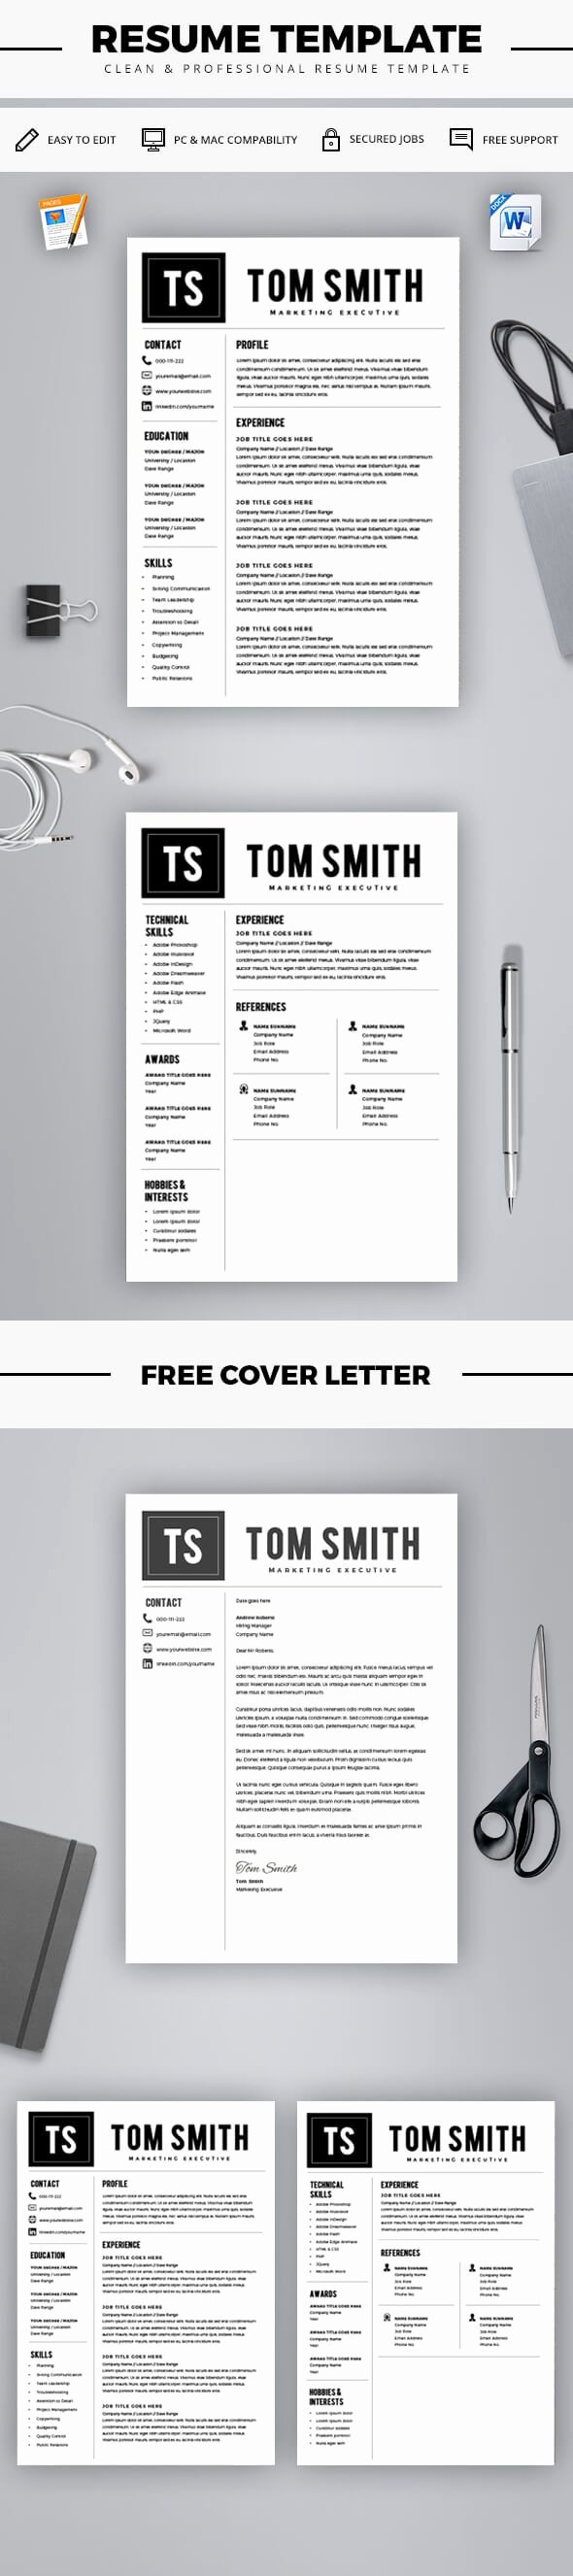 Free Resume Templates for Mac Unique 25 Best Ideas About Resume Template Free On Pinterest